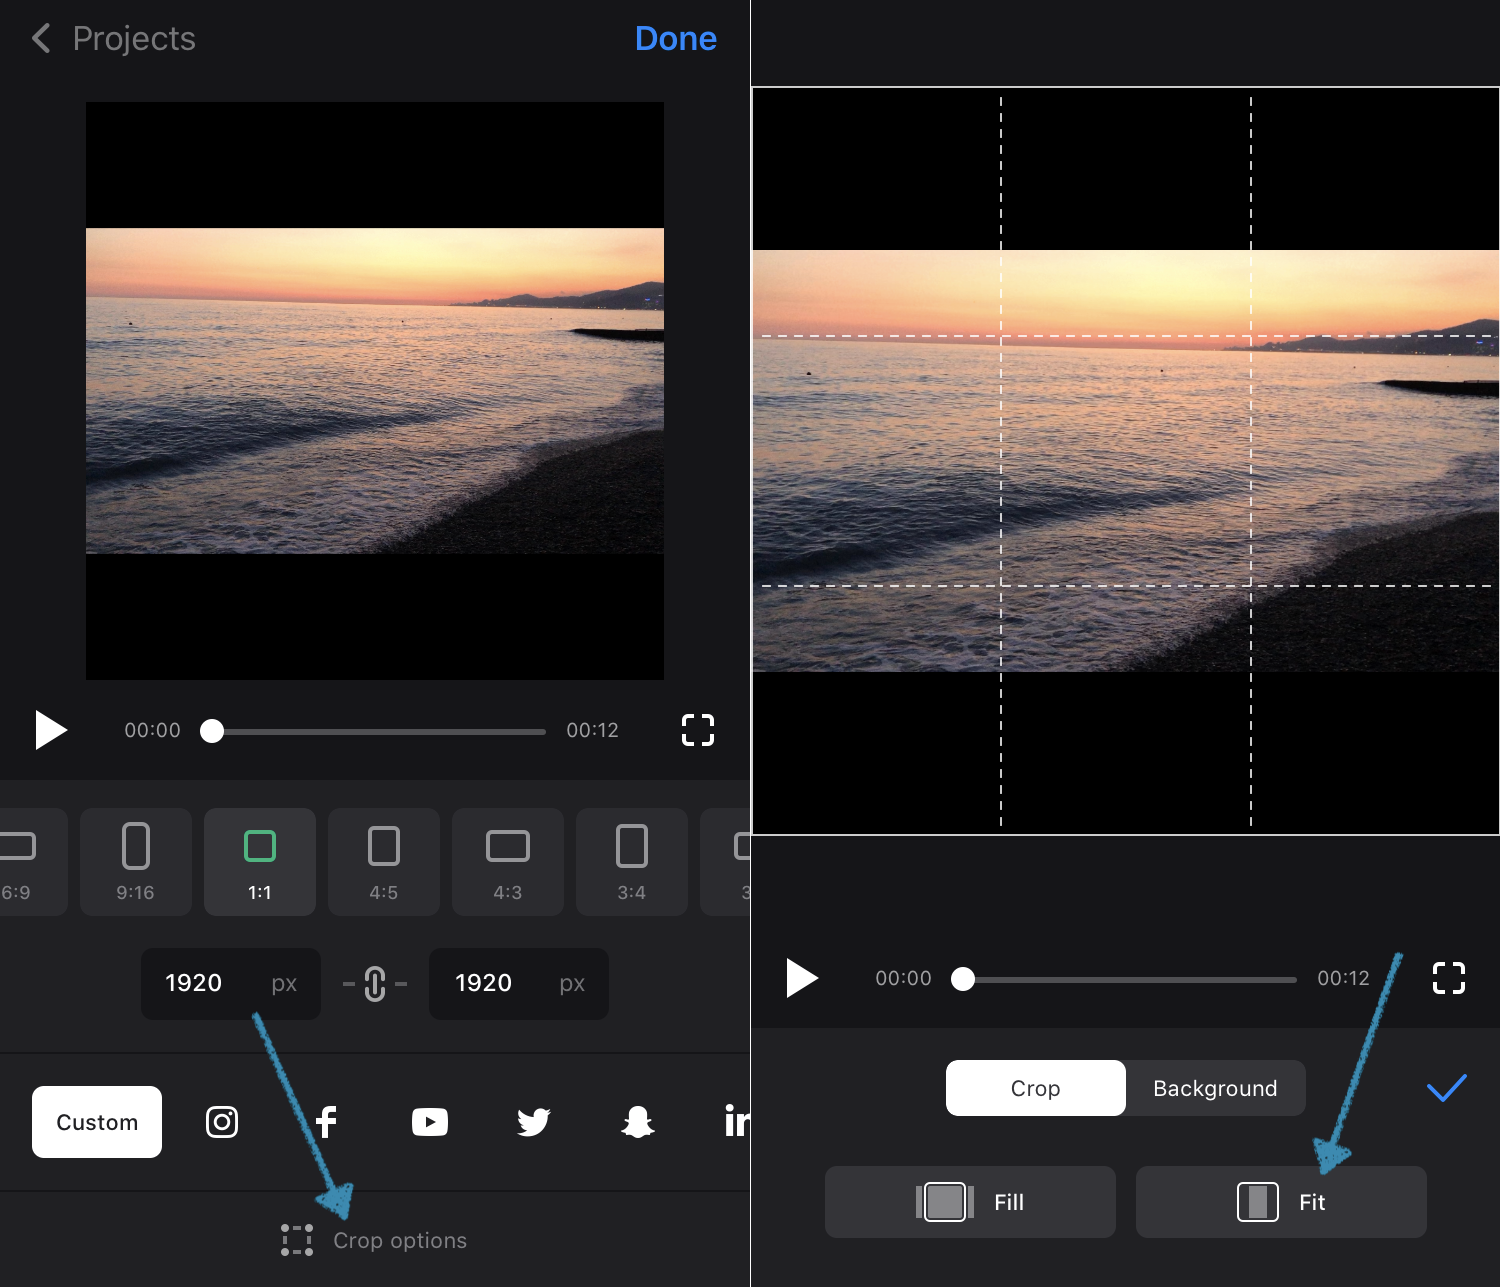 Crop your video in Cropping Video App